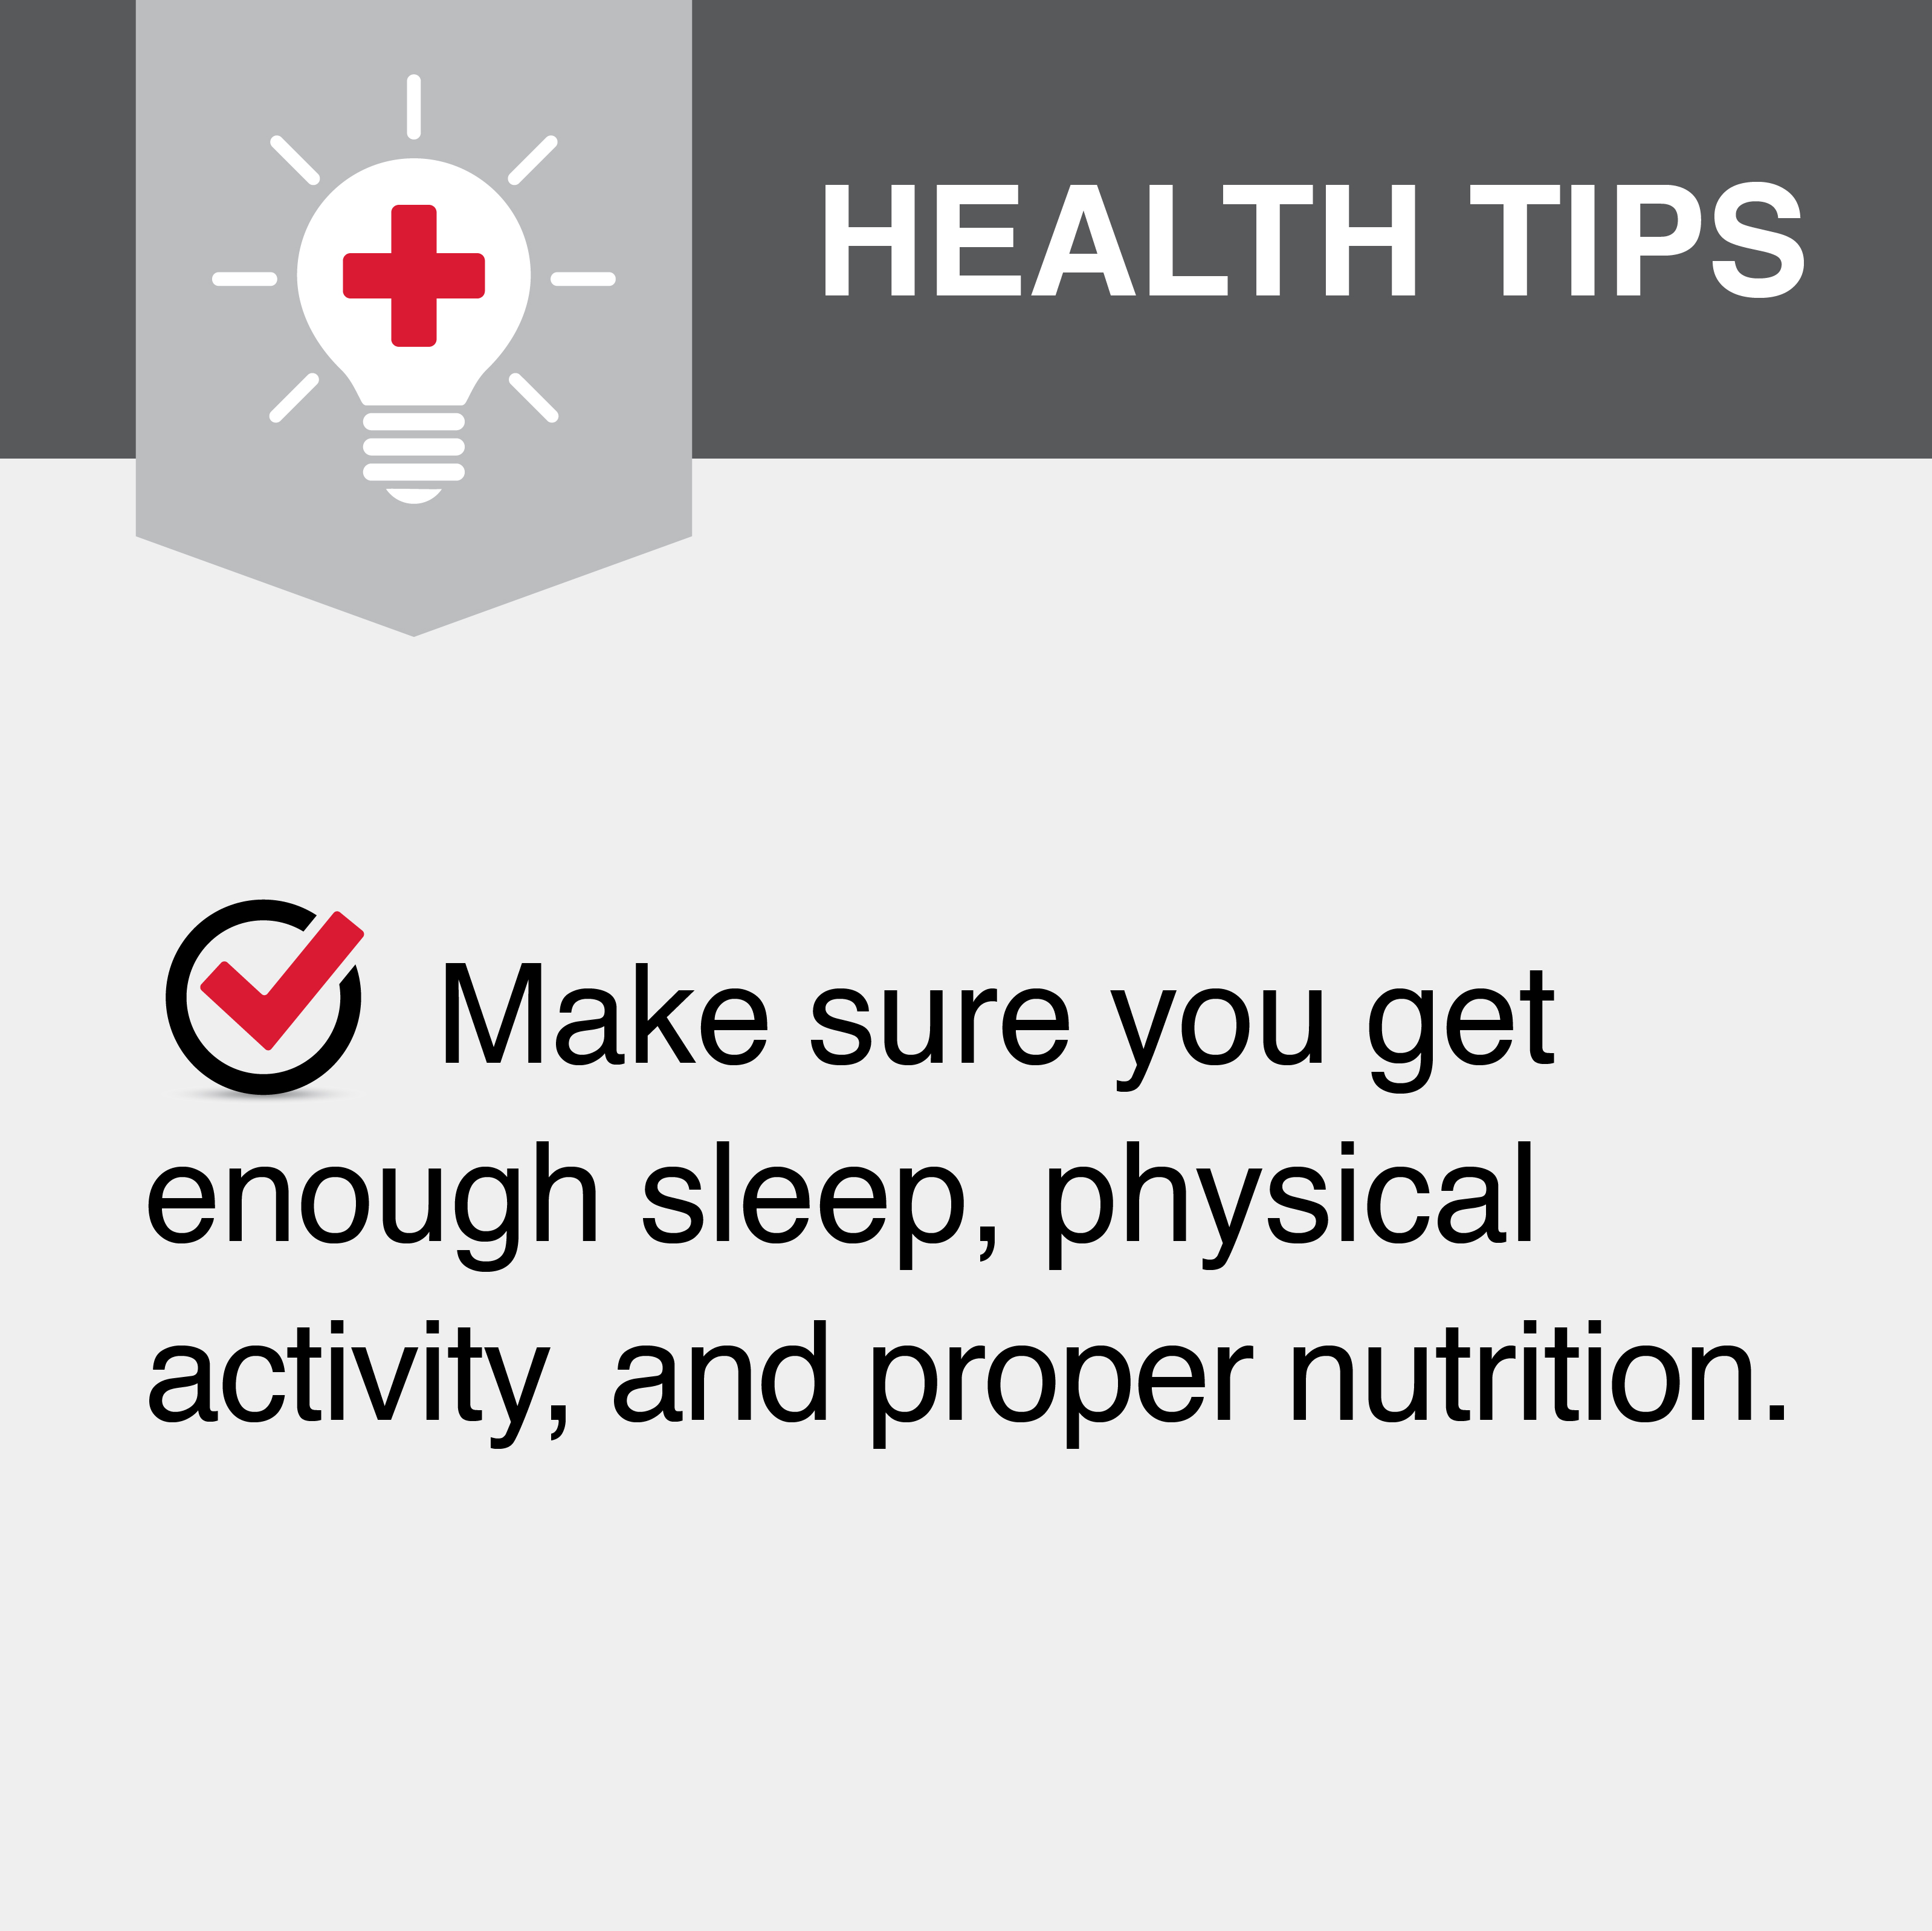 Make sure you get enough sleep, physical activity, and proper nutrition.